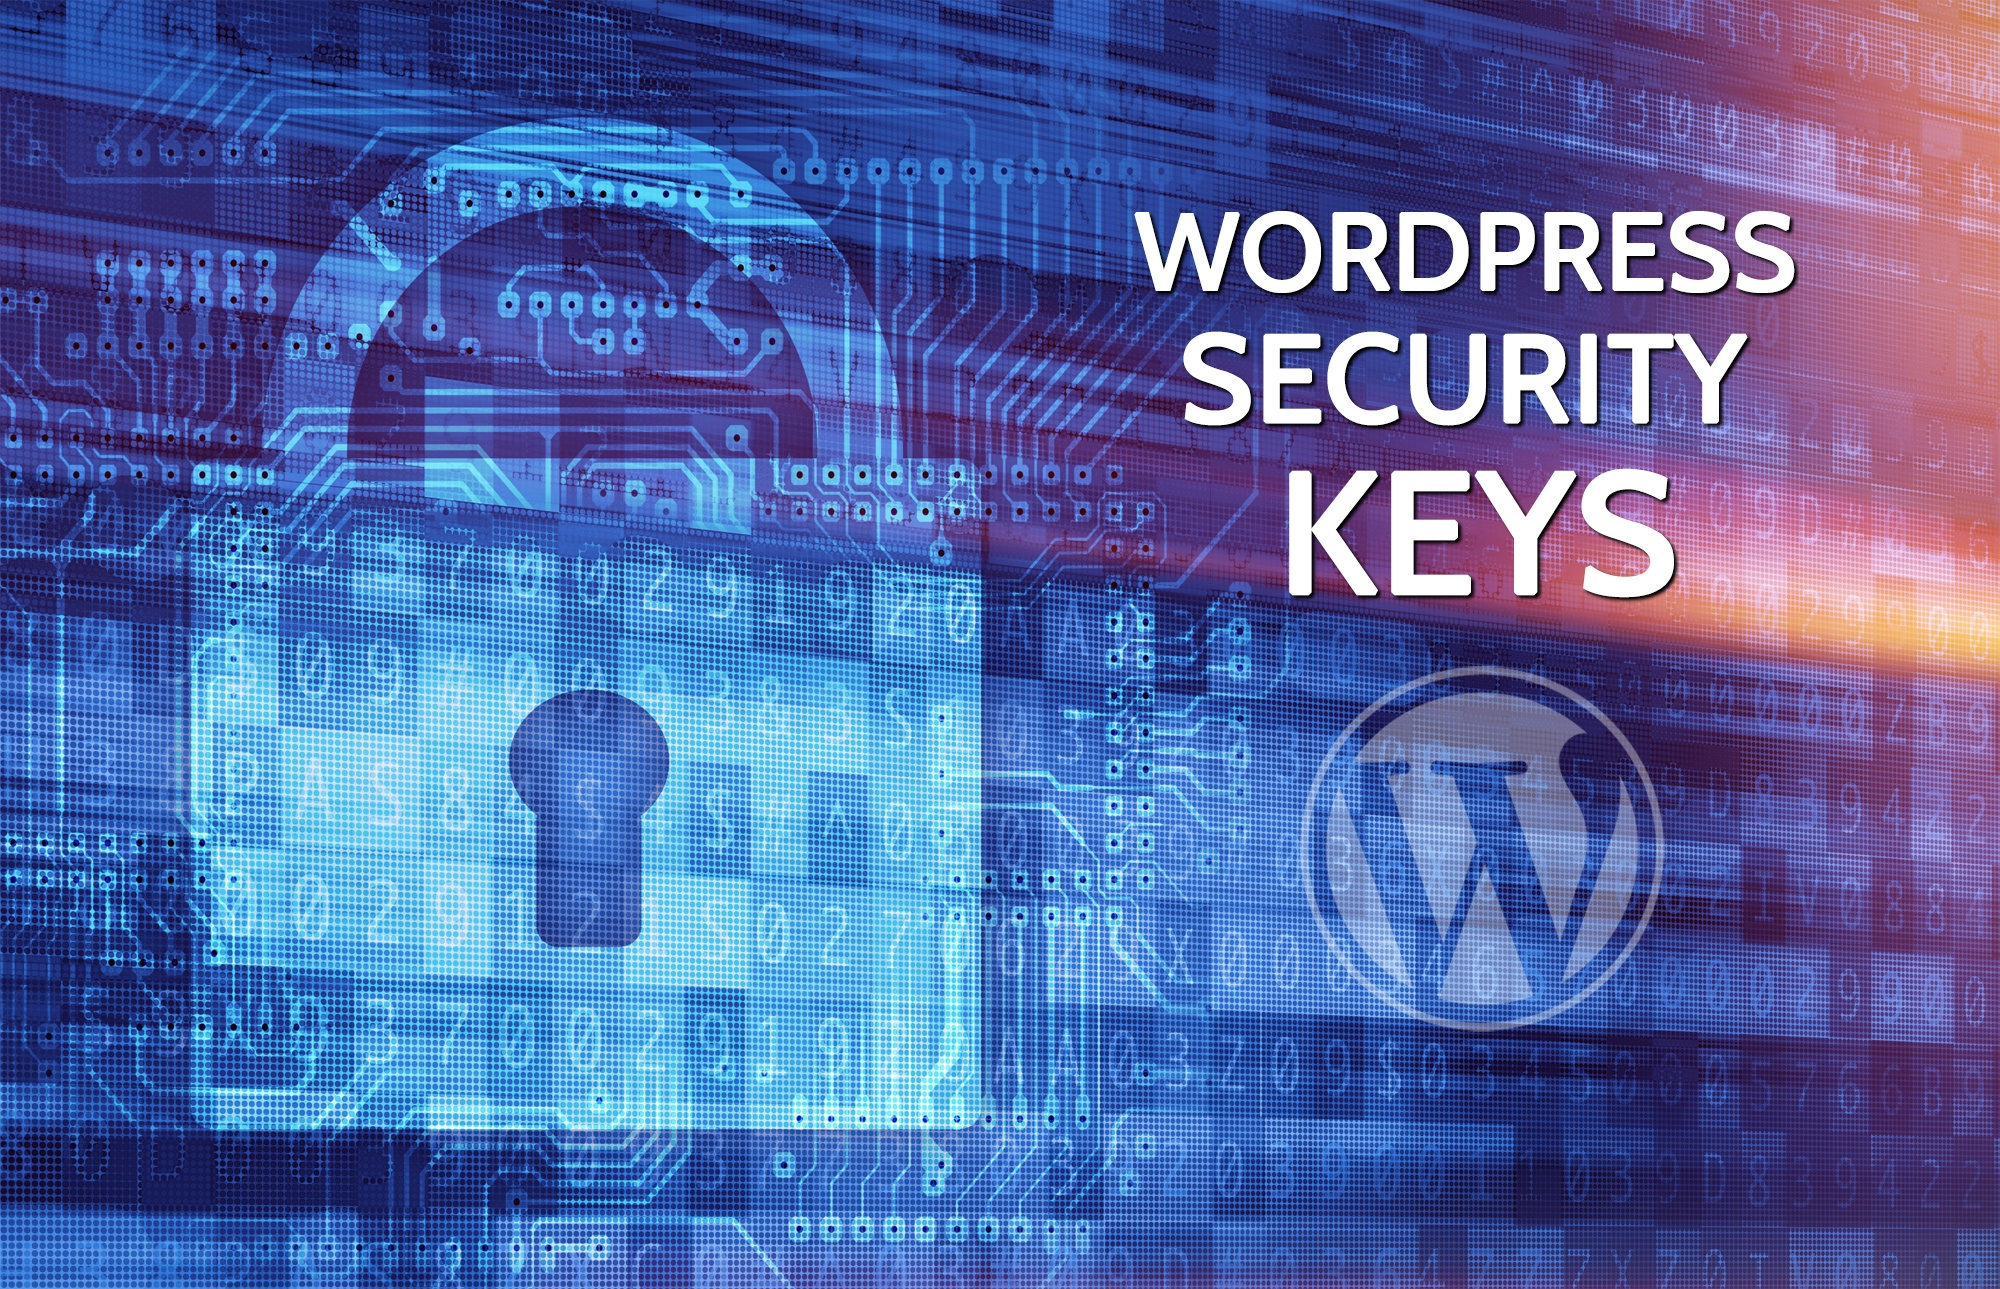 WordPress Security Keys Image